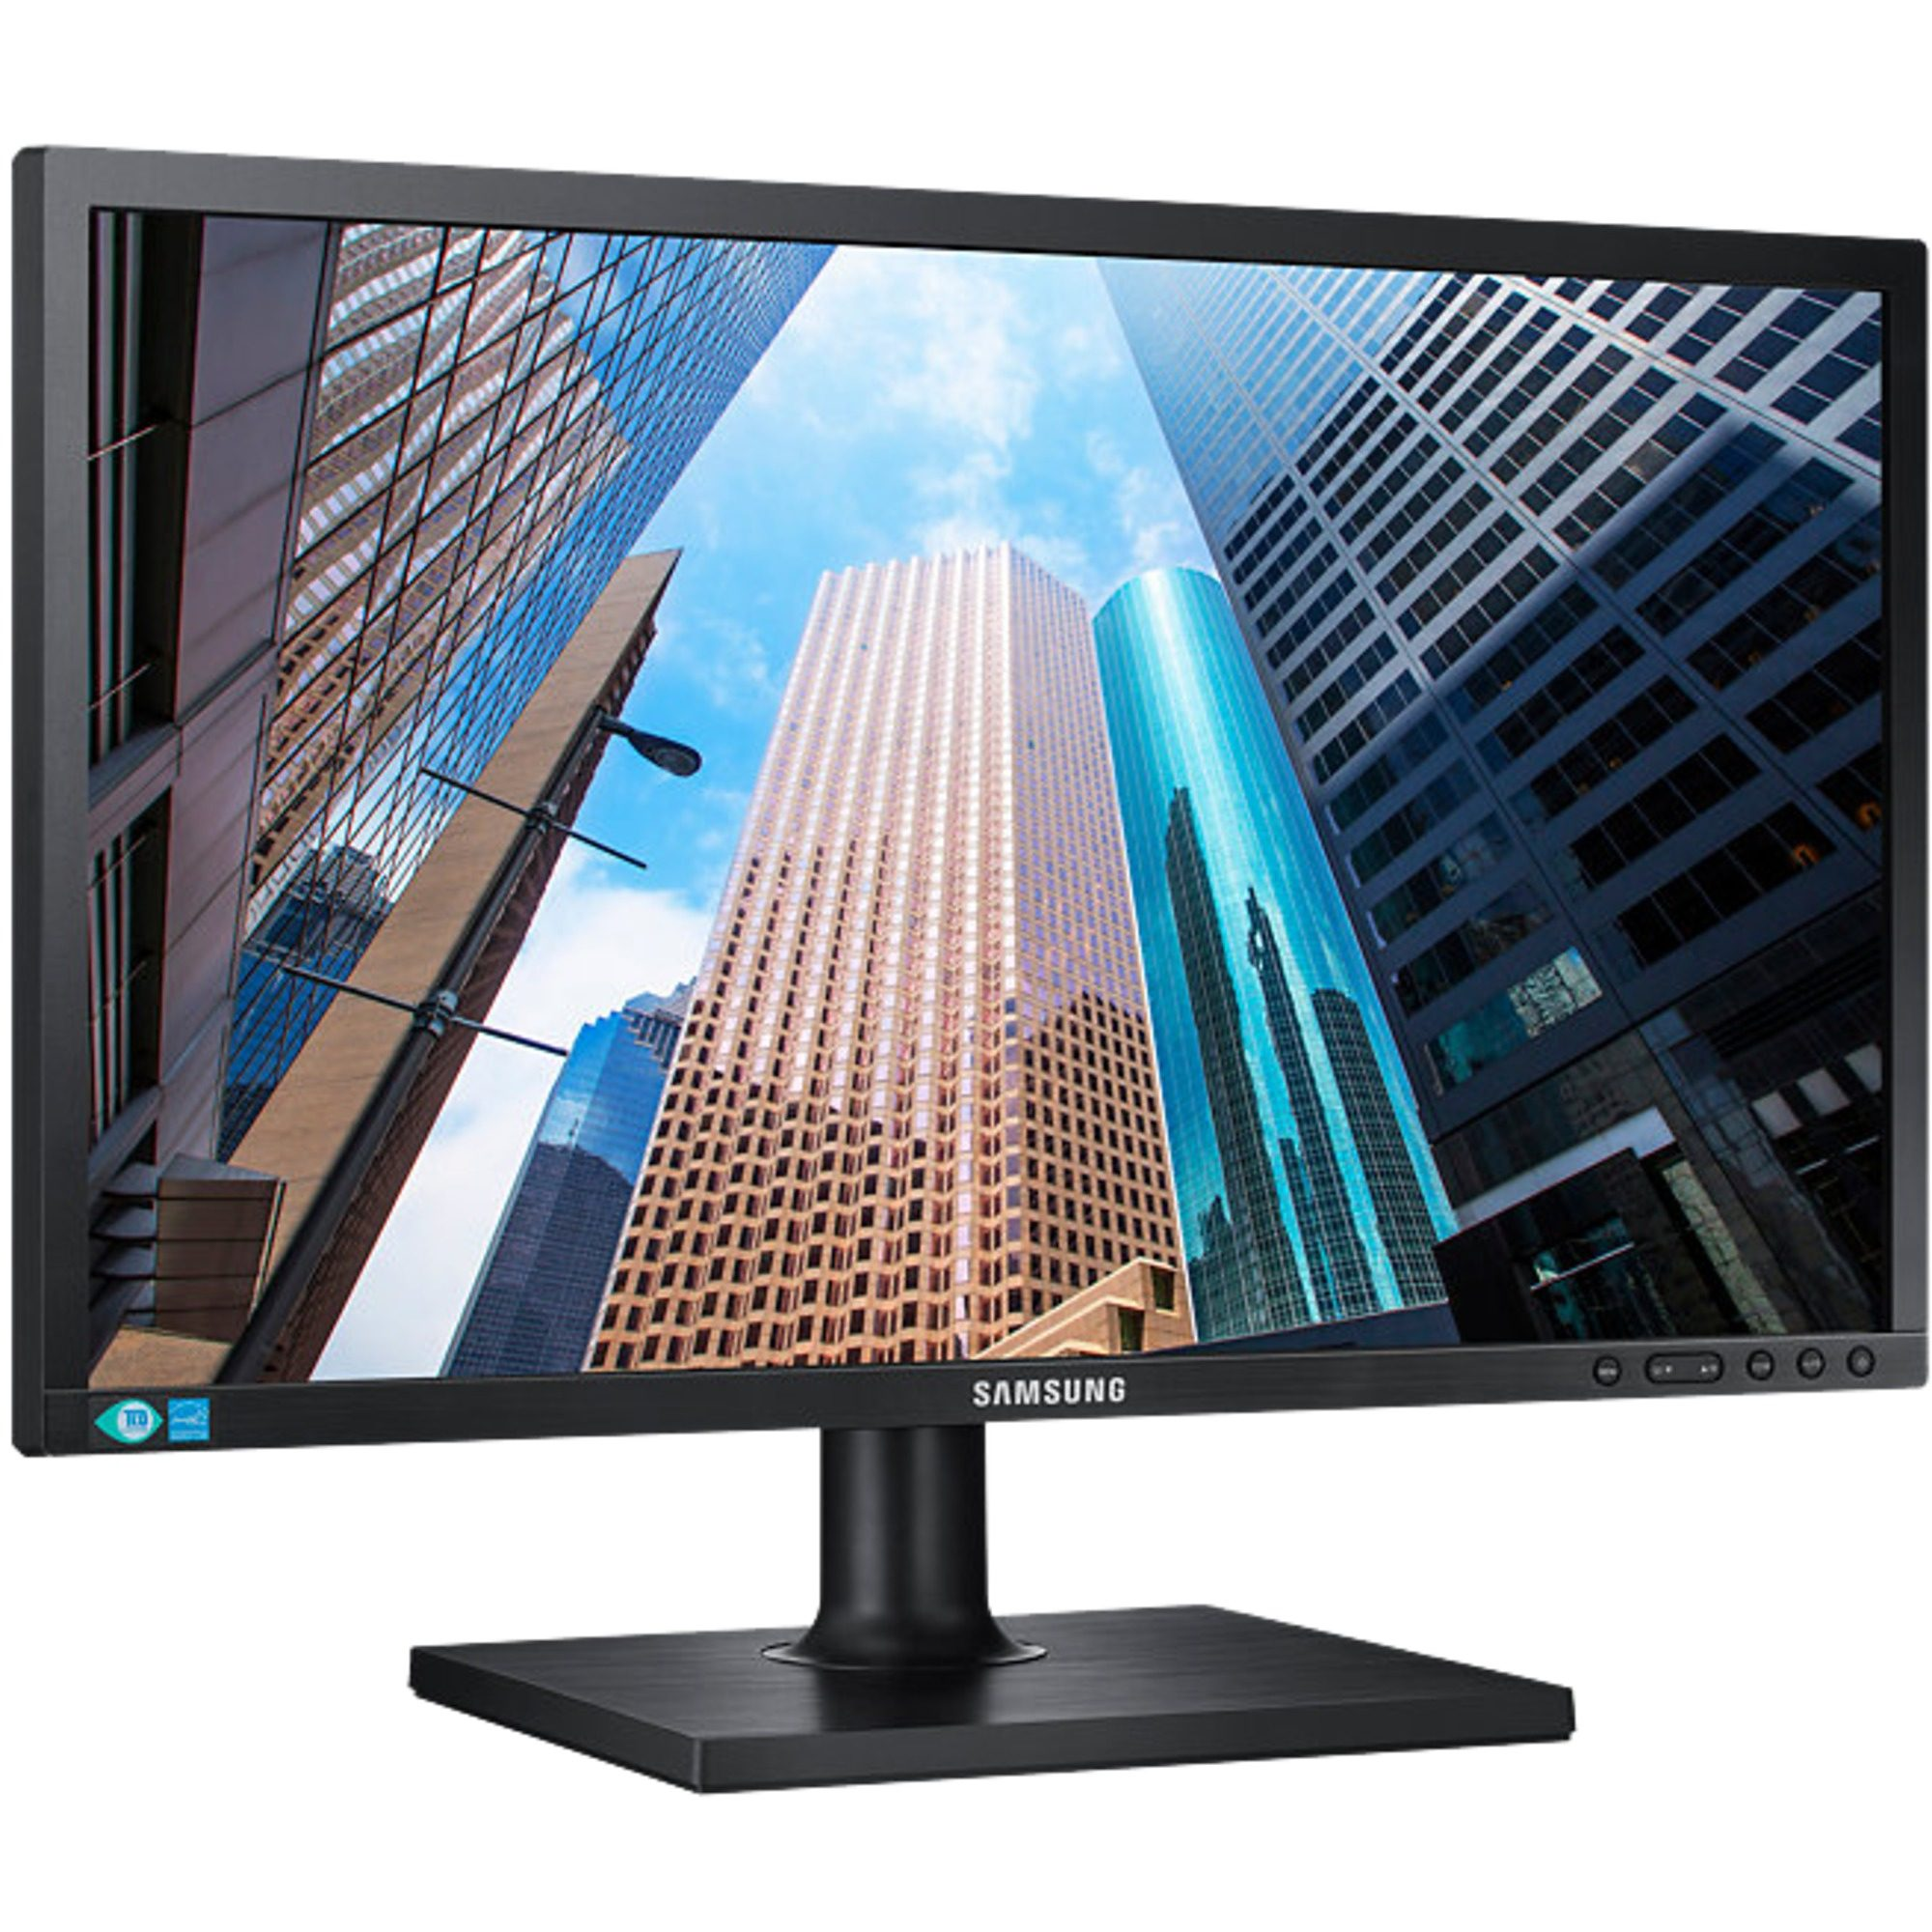 Samsung LED-Monitor »S24E450BL LED«